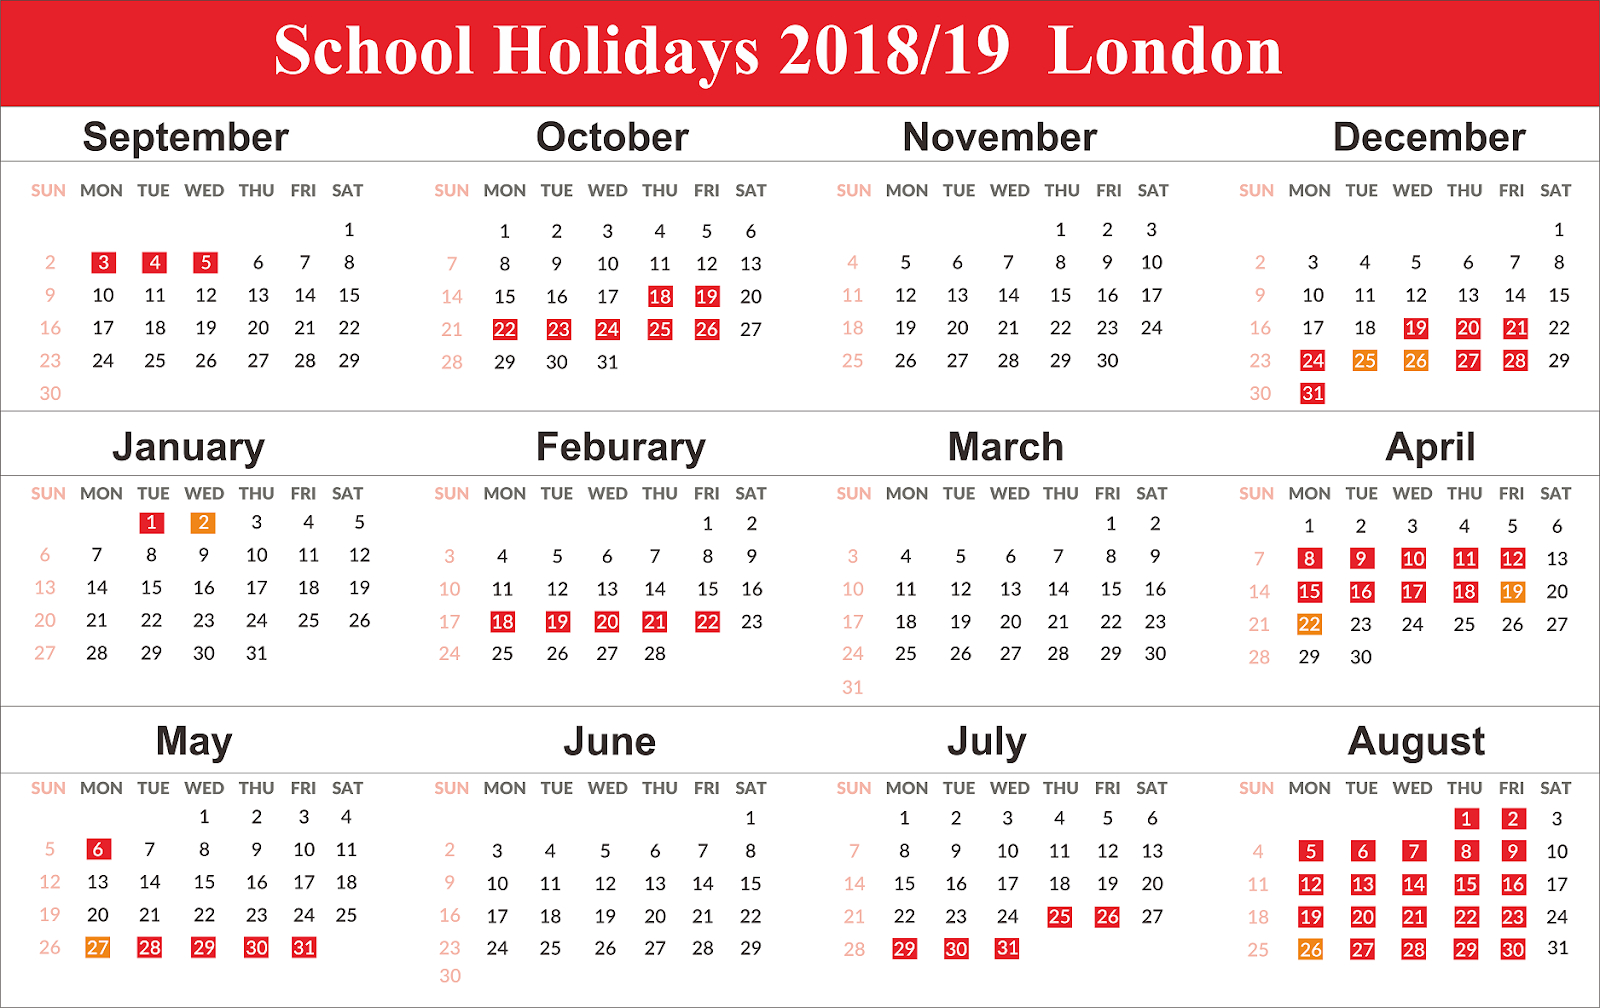 School Holidays 2019 London Calendar {Template} Calendar 2019 London